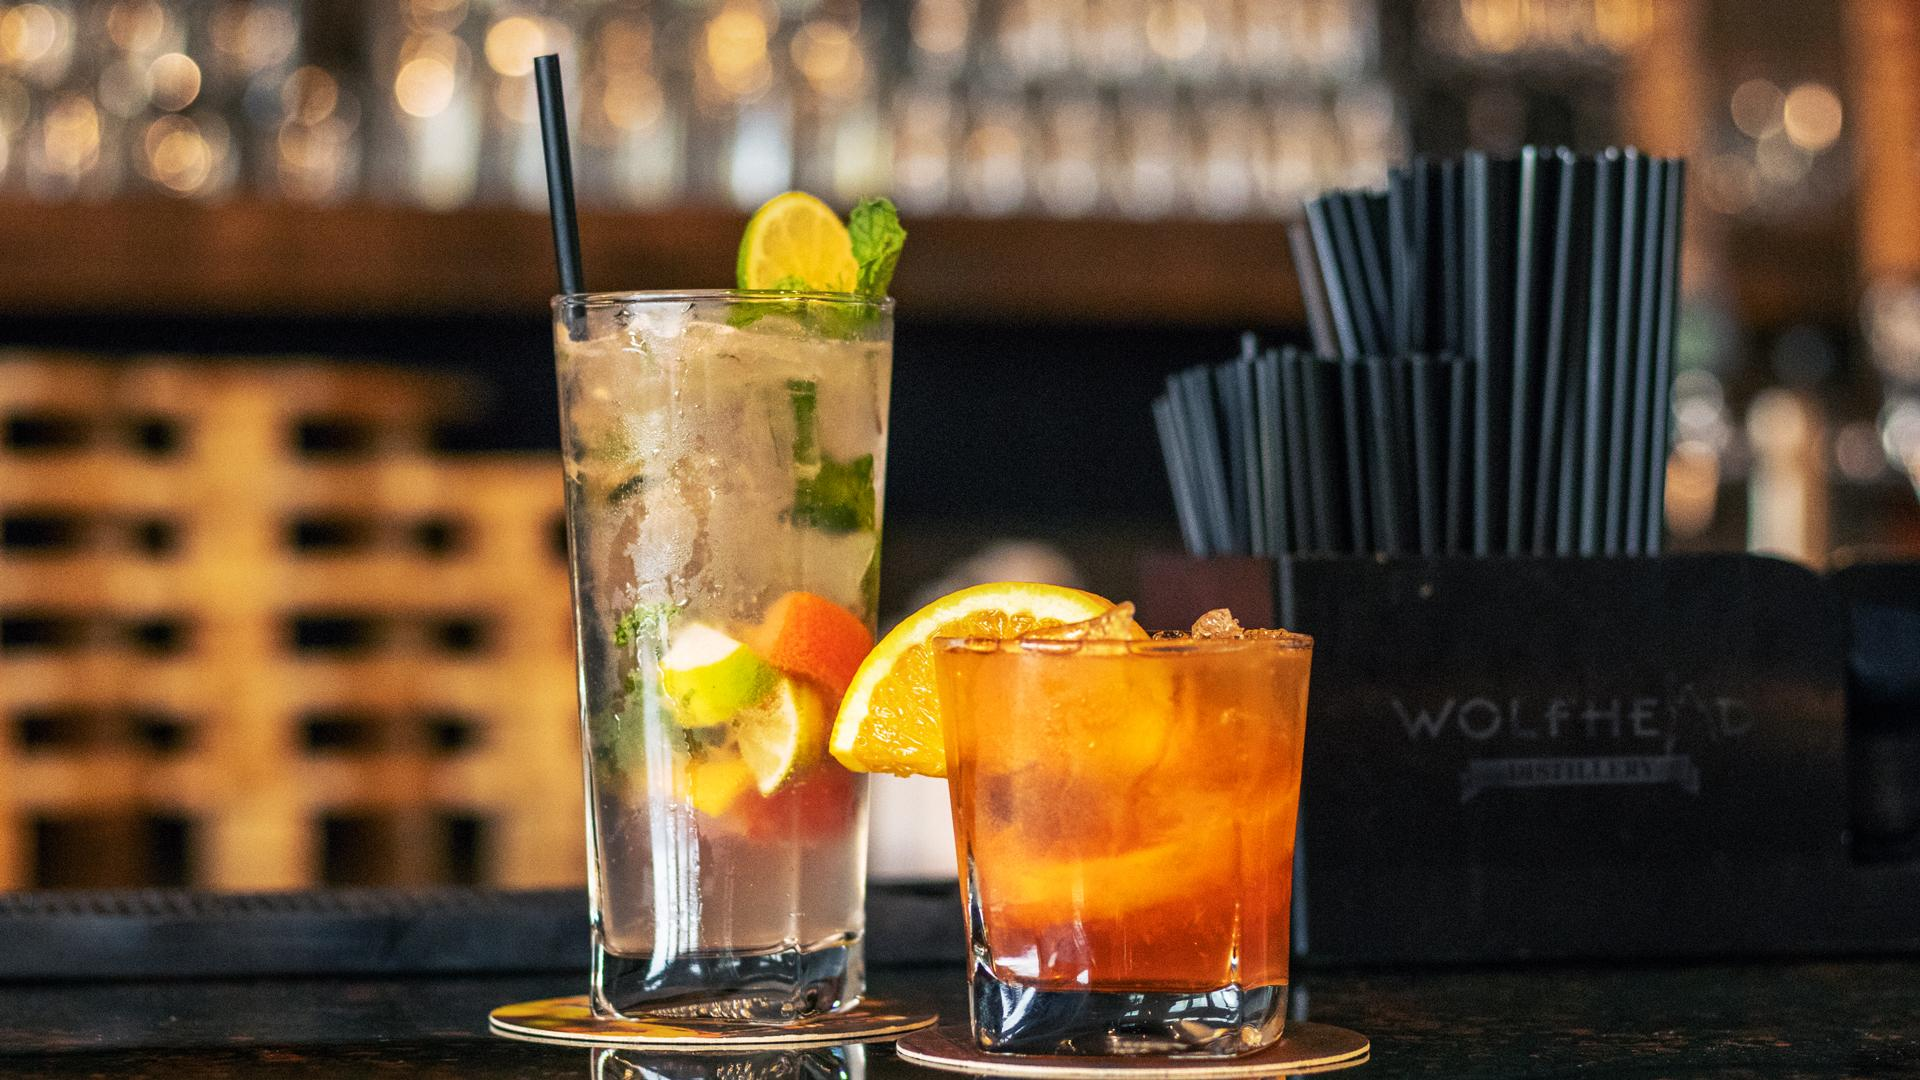 The best places to eat and drink in Windsor this fall | drinks at Wolfhead distillery